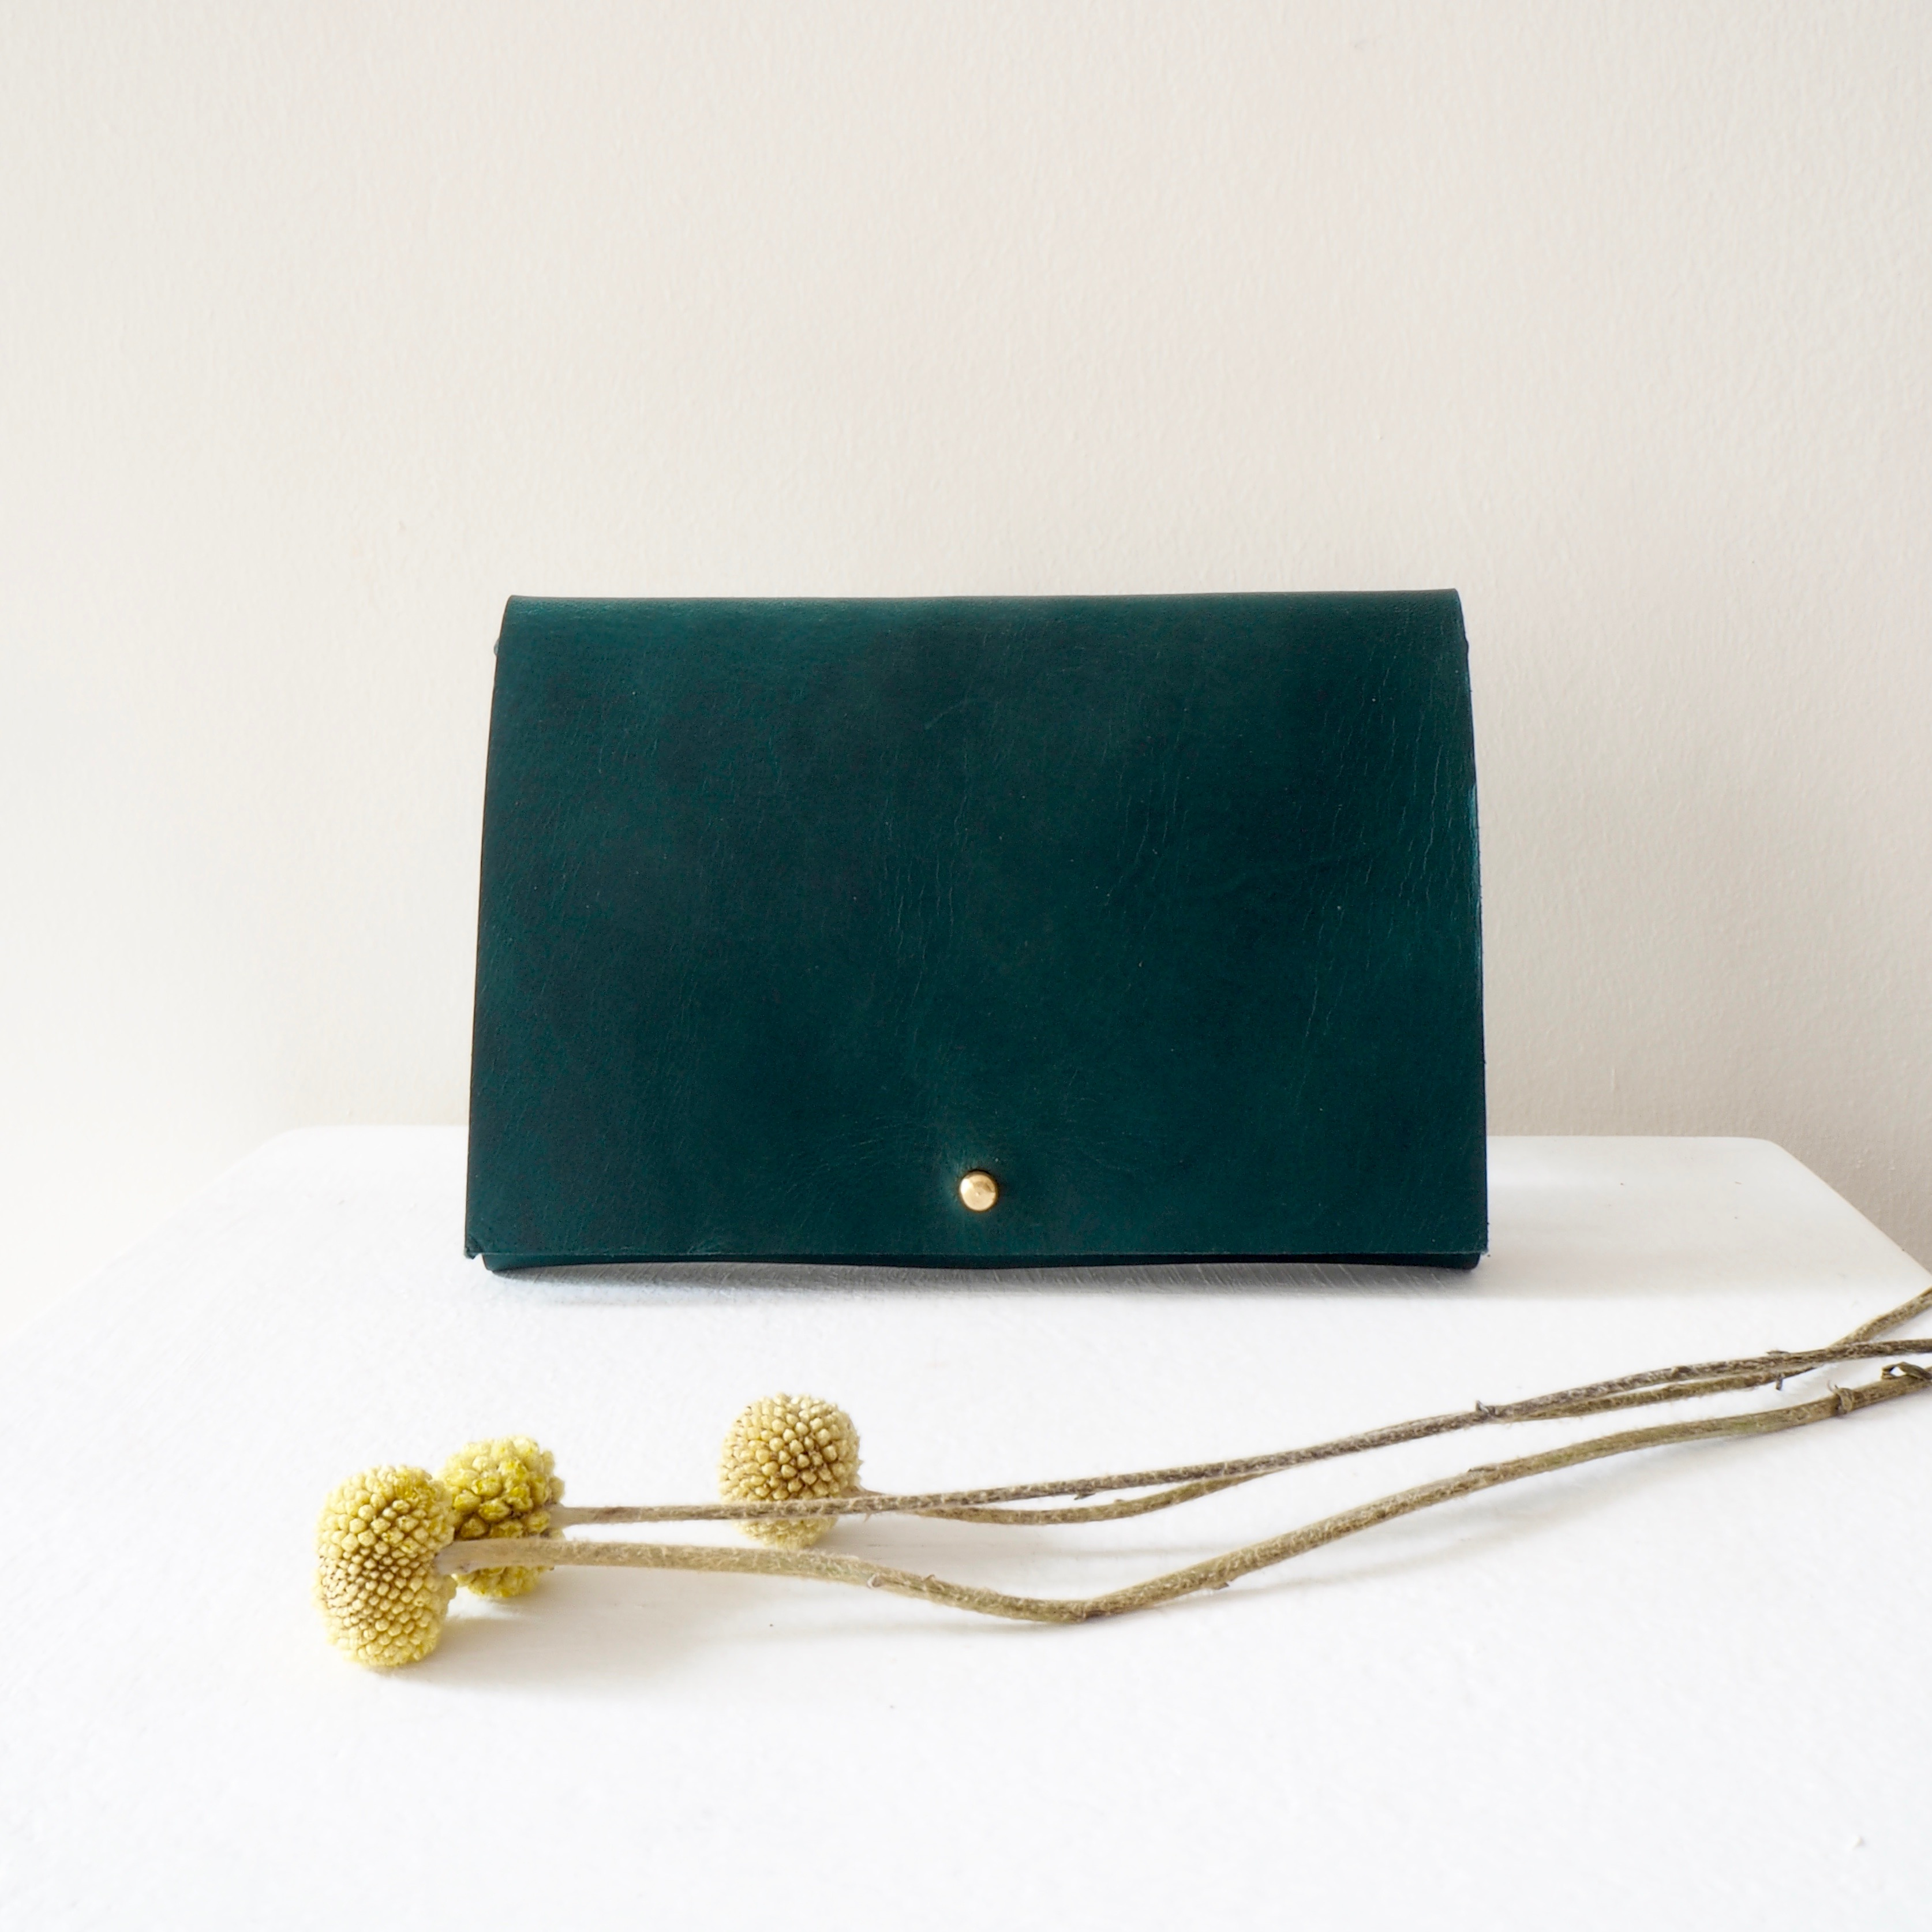 Forest green leather pouch